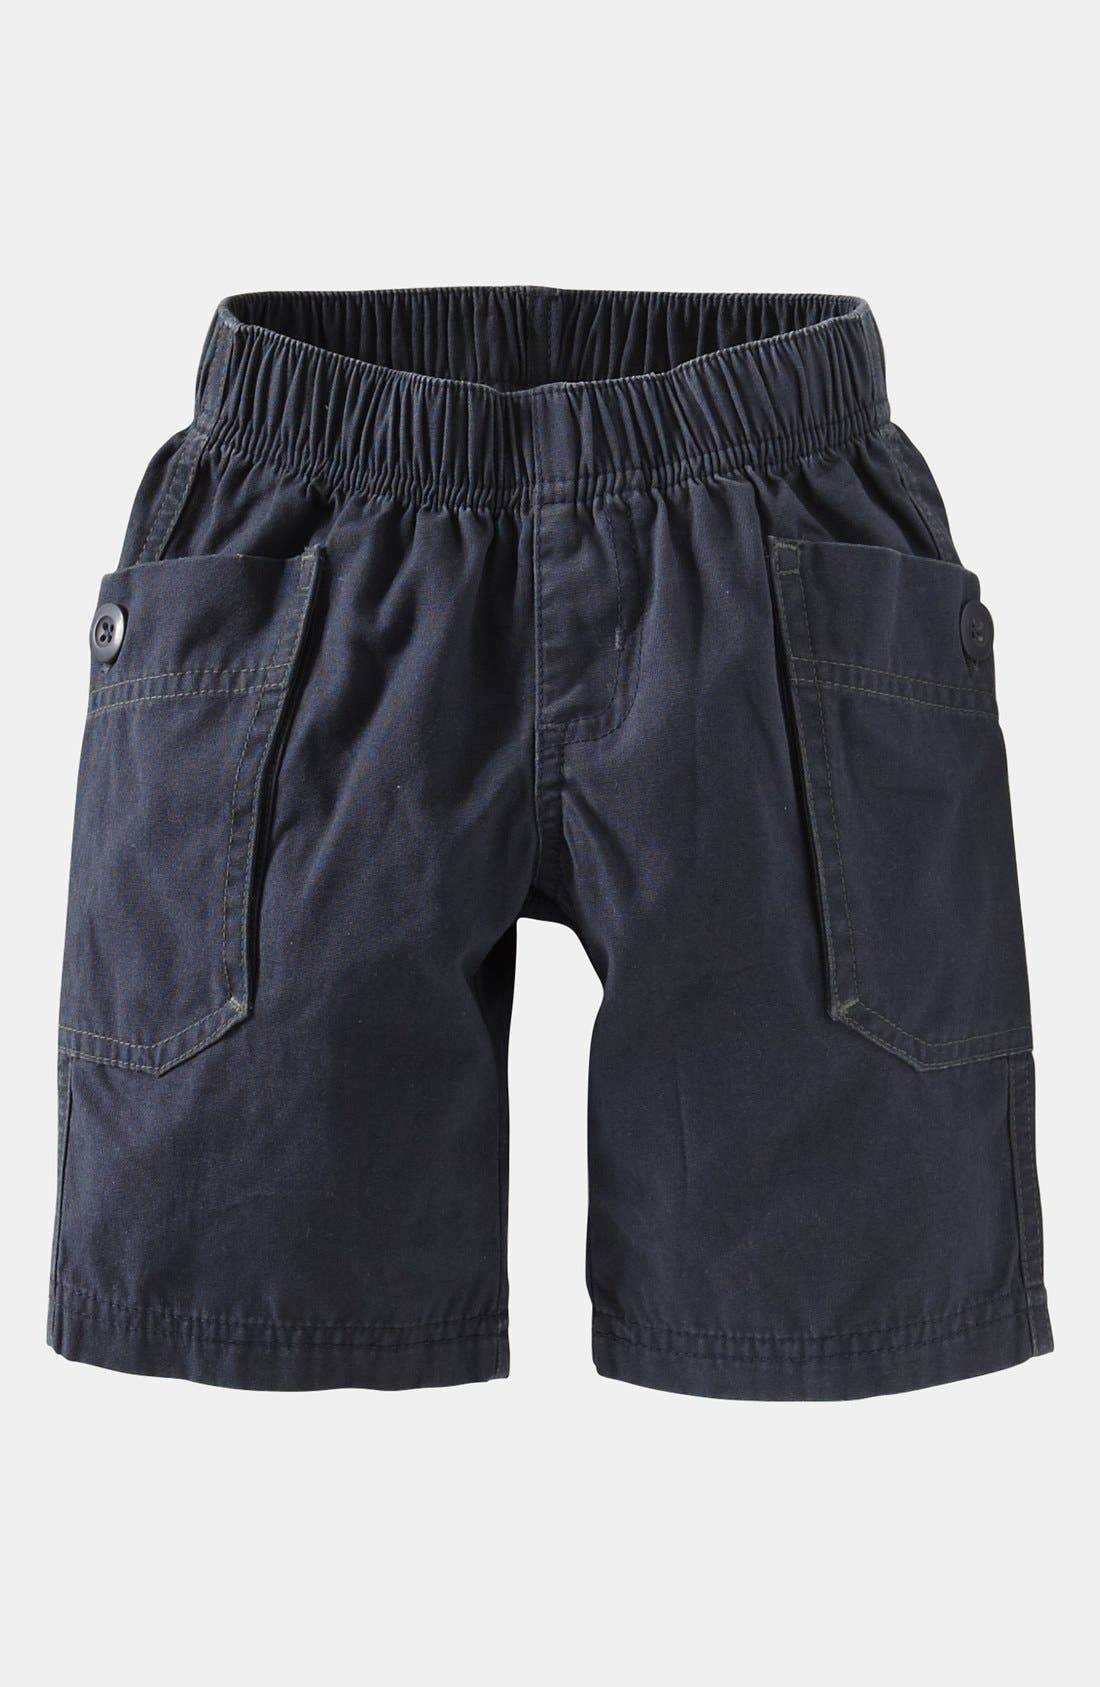 Alternate Image 1 Selected - Tea Collection 'Twanani' Shorts (Toddler)